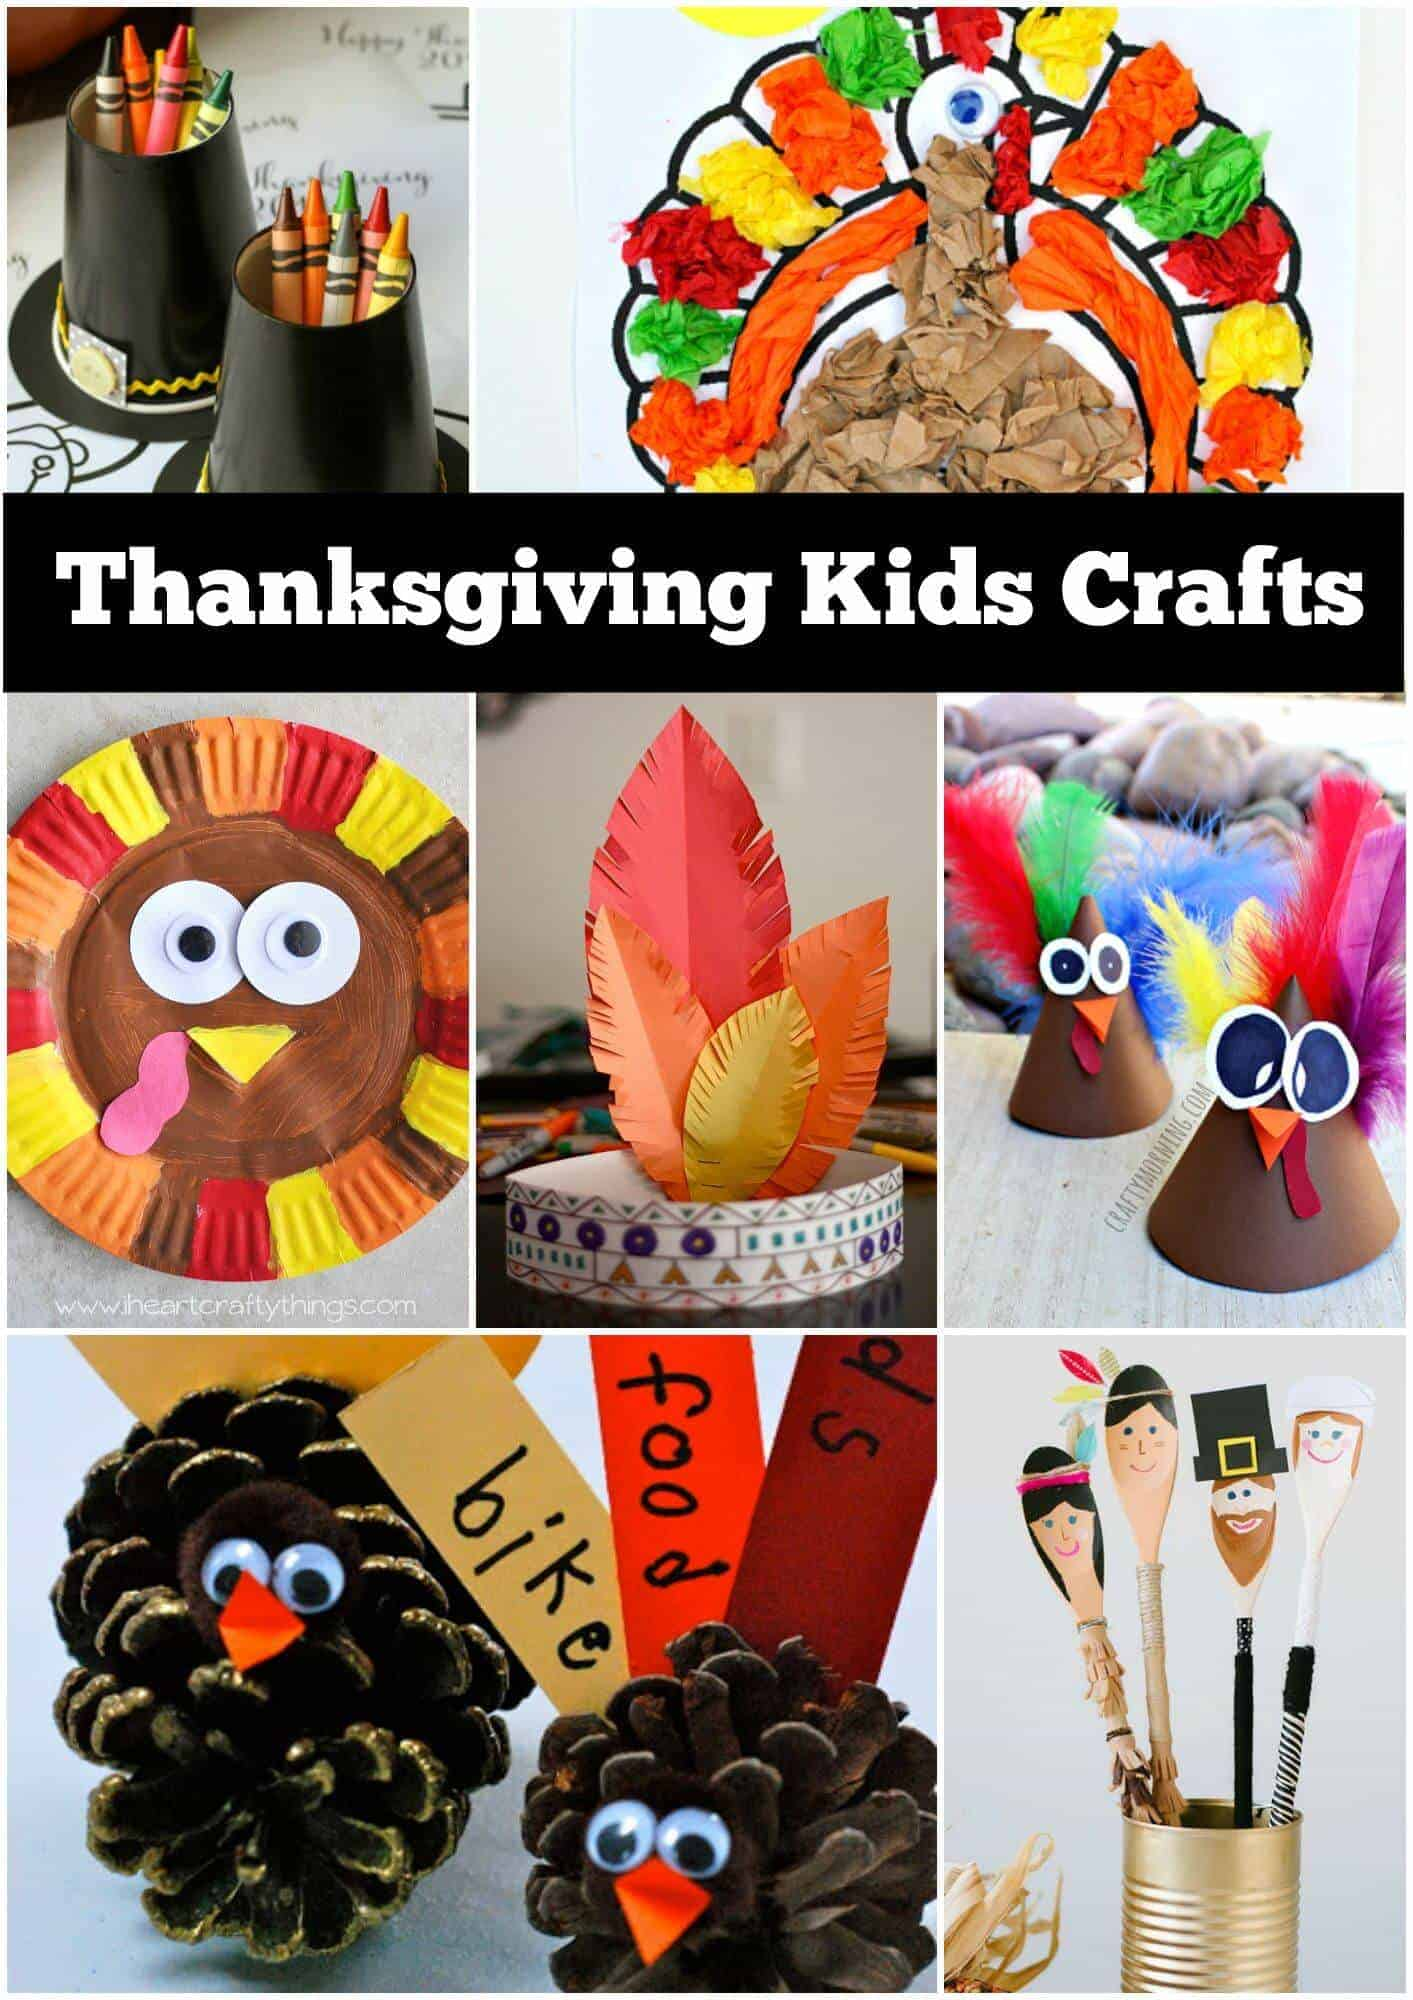 Thanksgiving craft ideas for kids page of